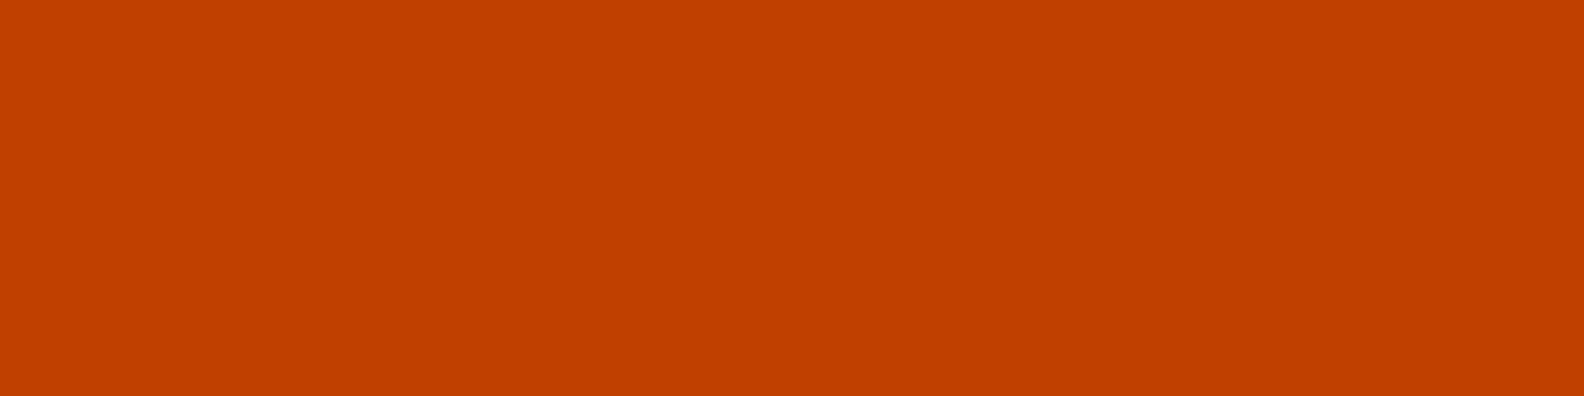 1584x396 Mahogany Solid Color Background